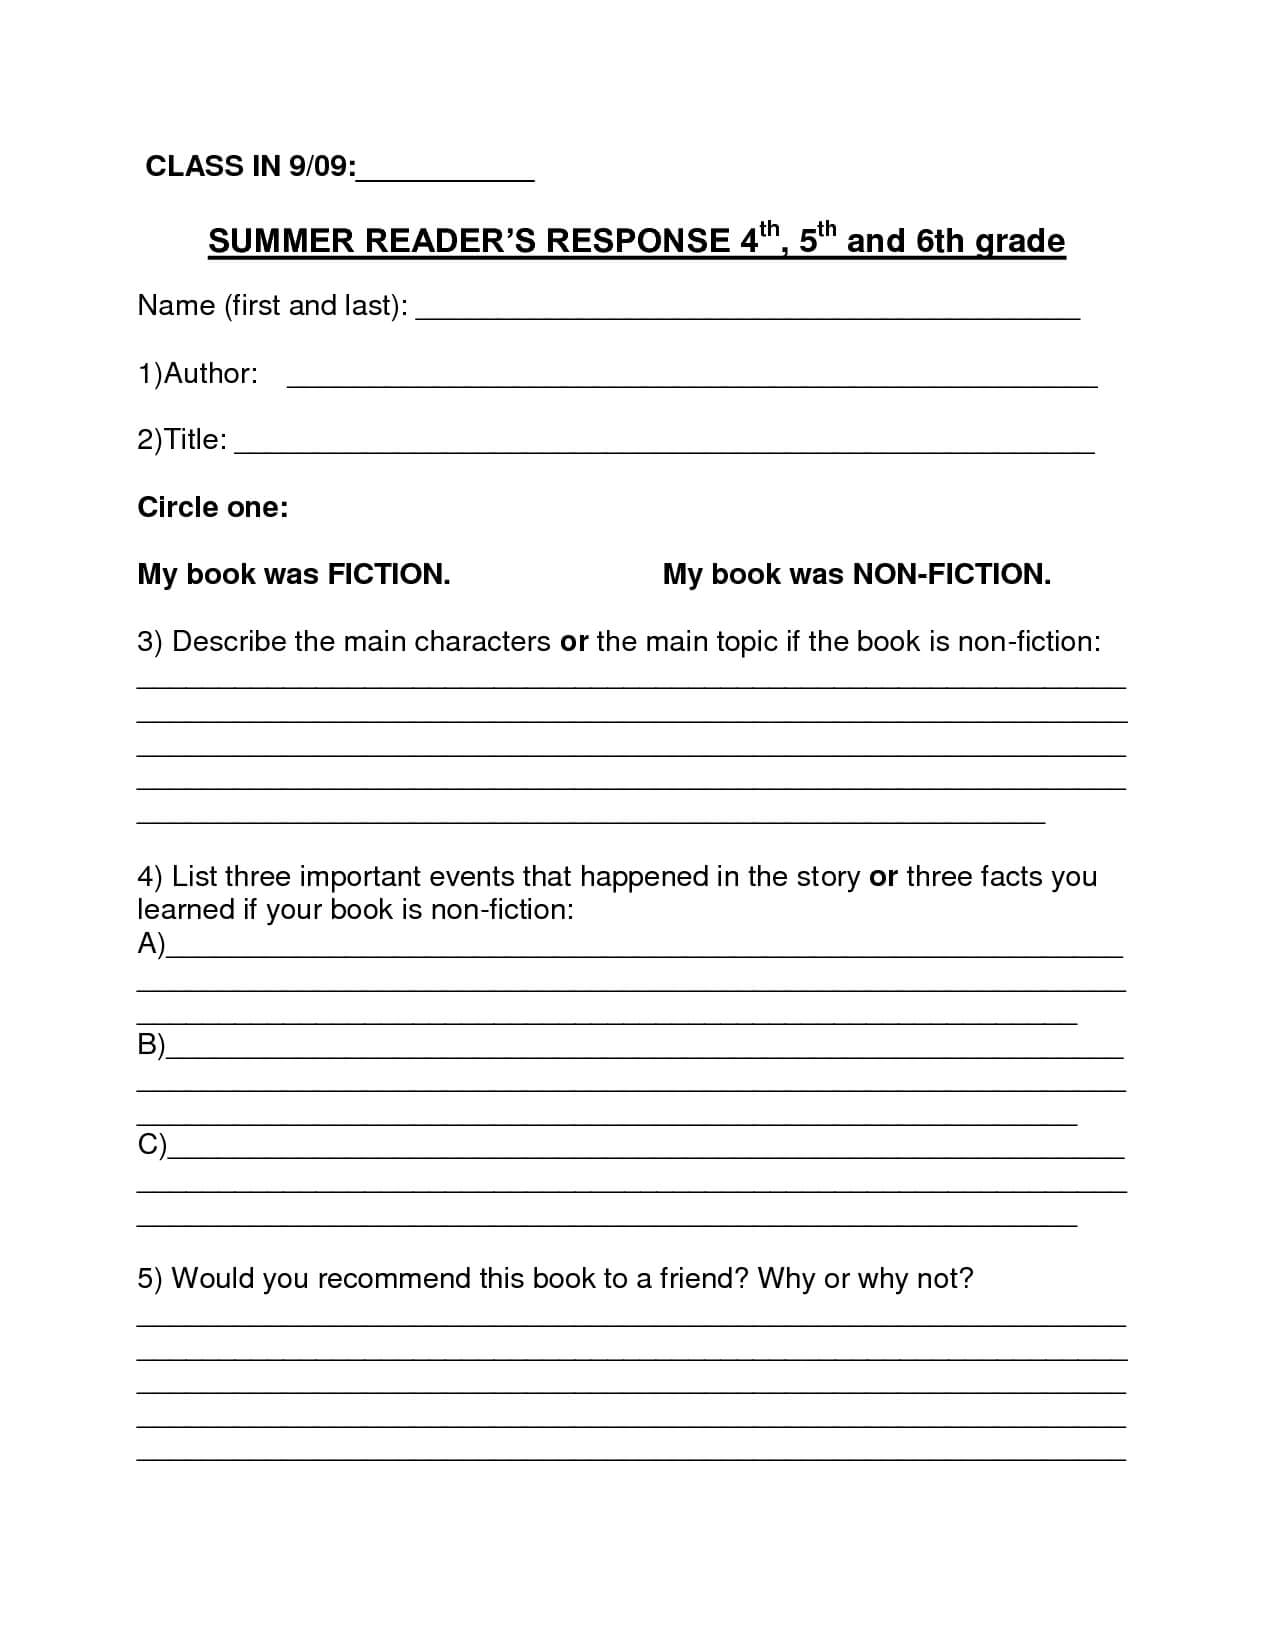 Book Report Template   Summer Book Report 4Th  6Th Grade Intended For Book Report Template 6Th Grade